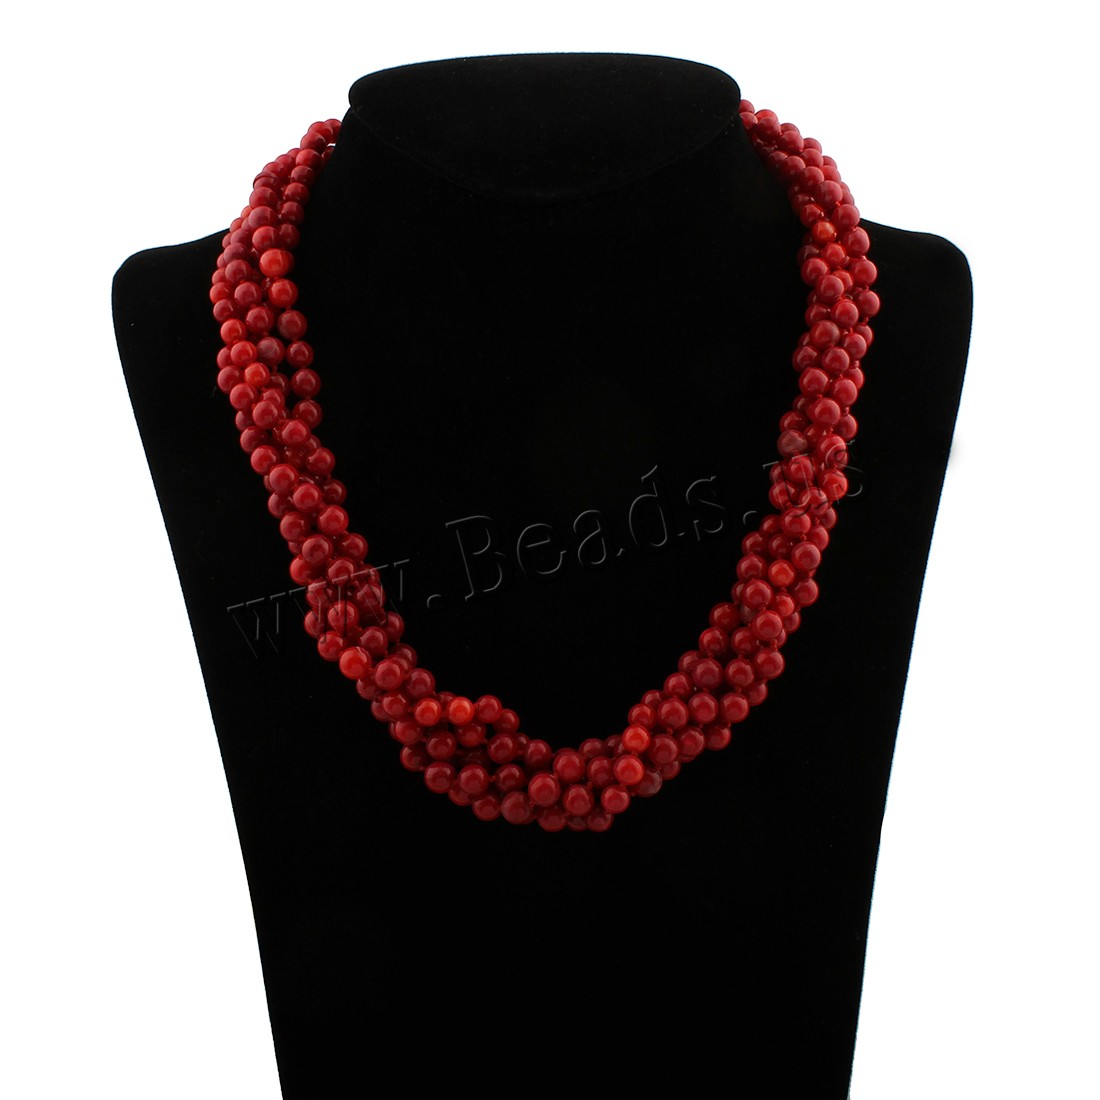 Buy Coral Necklace Natural Coral brass spring ring clasp woman red 6x6mm Sold Per Approx 18 Inch Strand